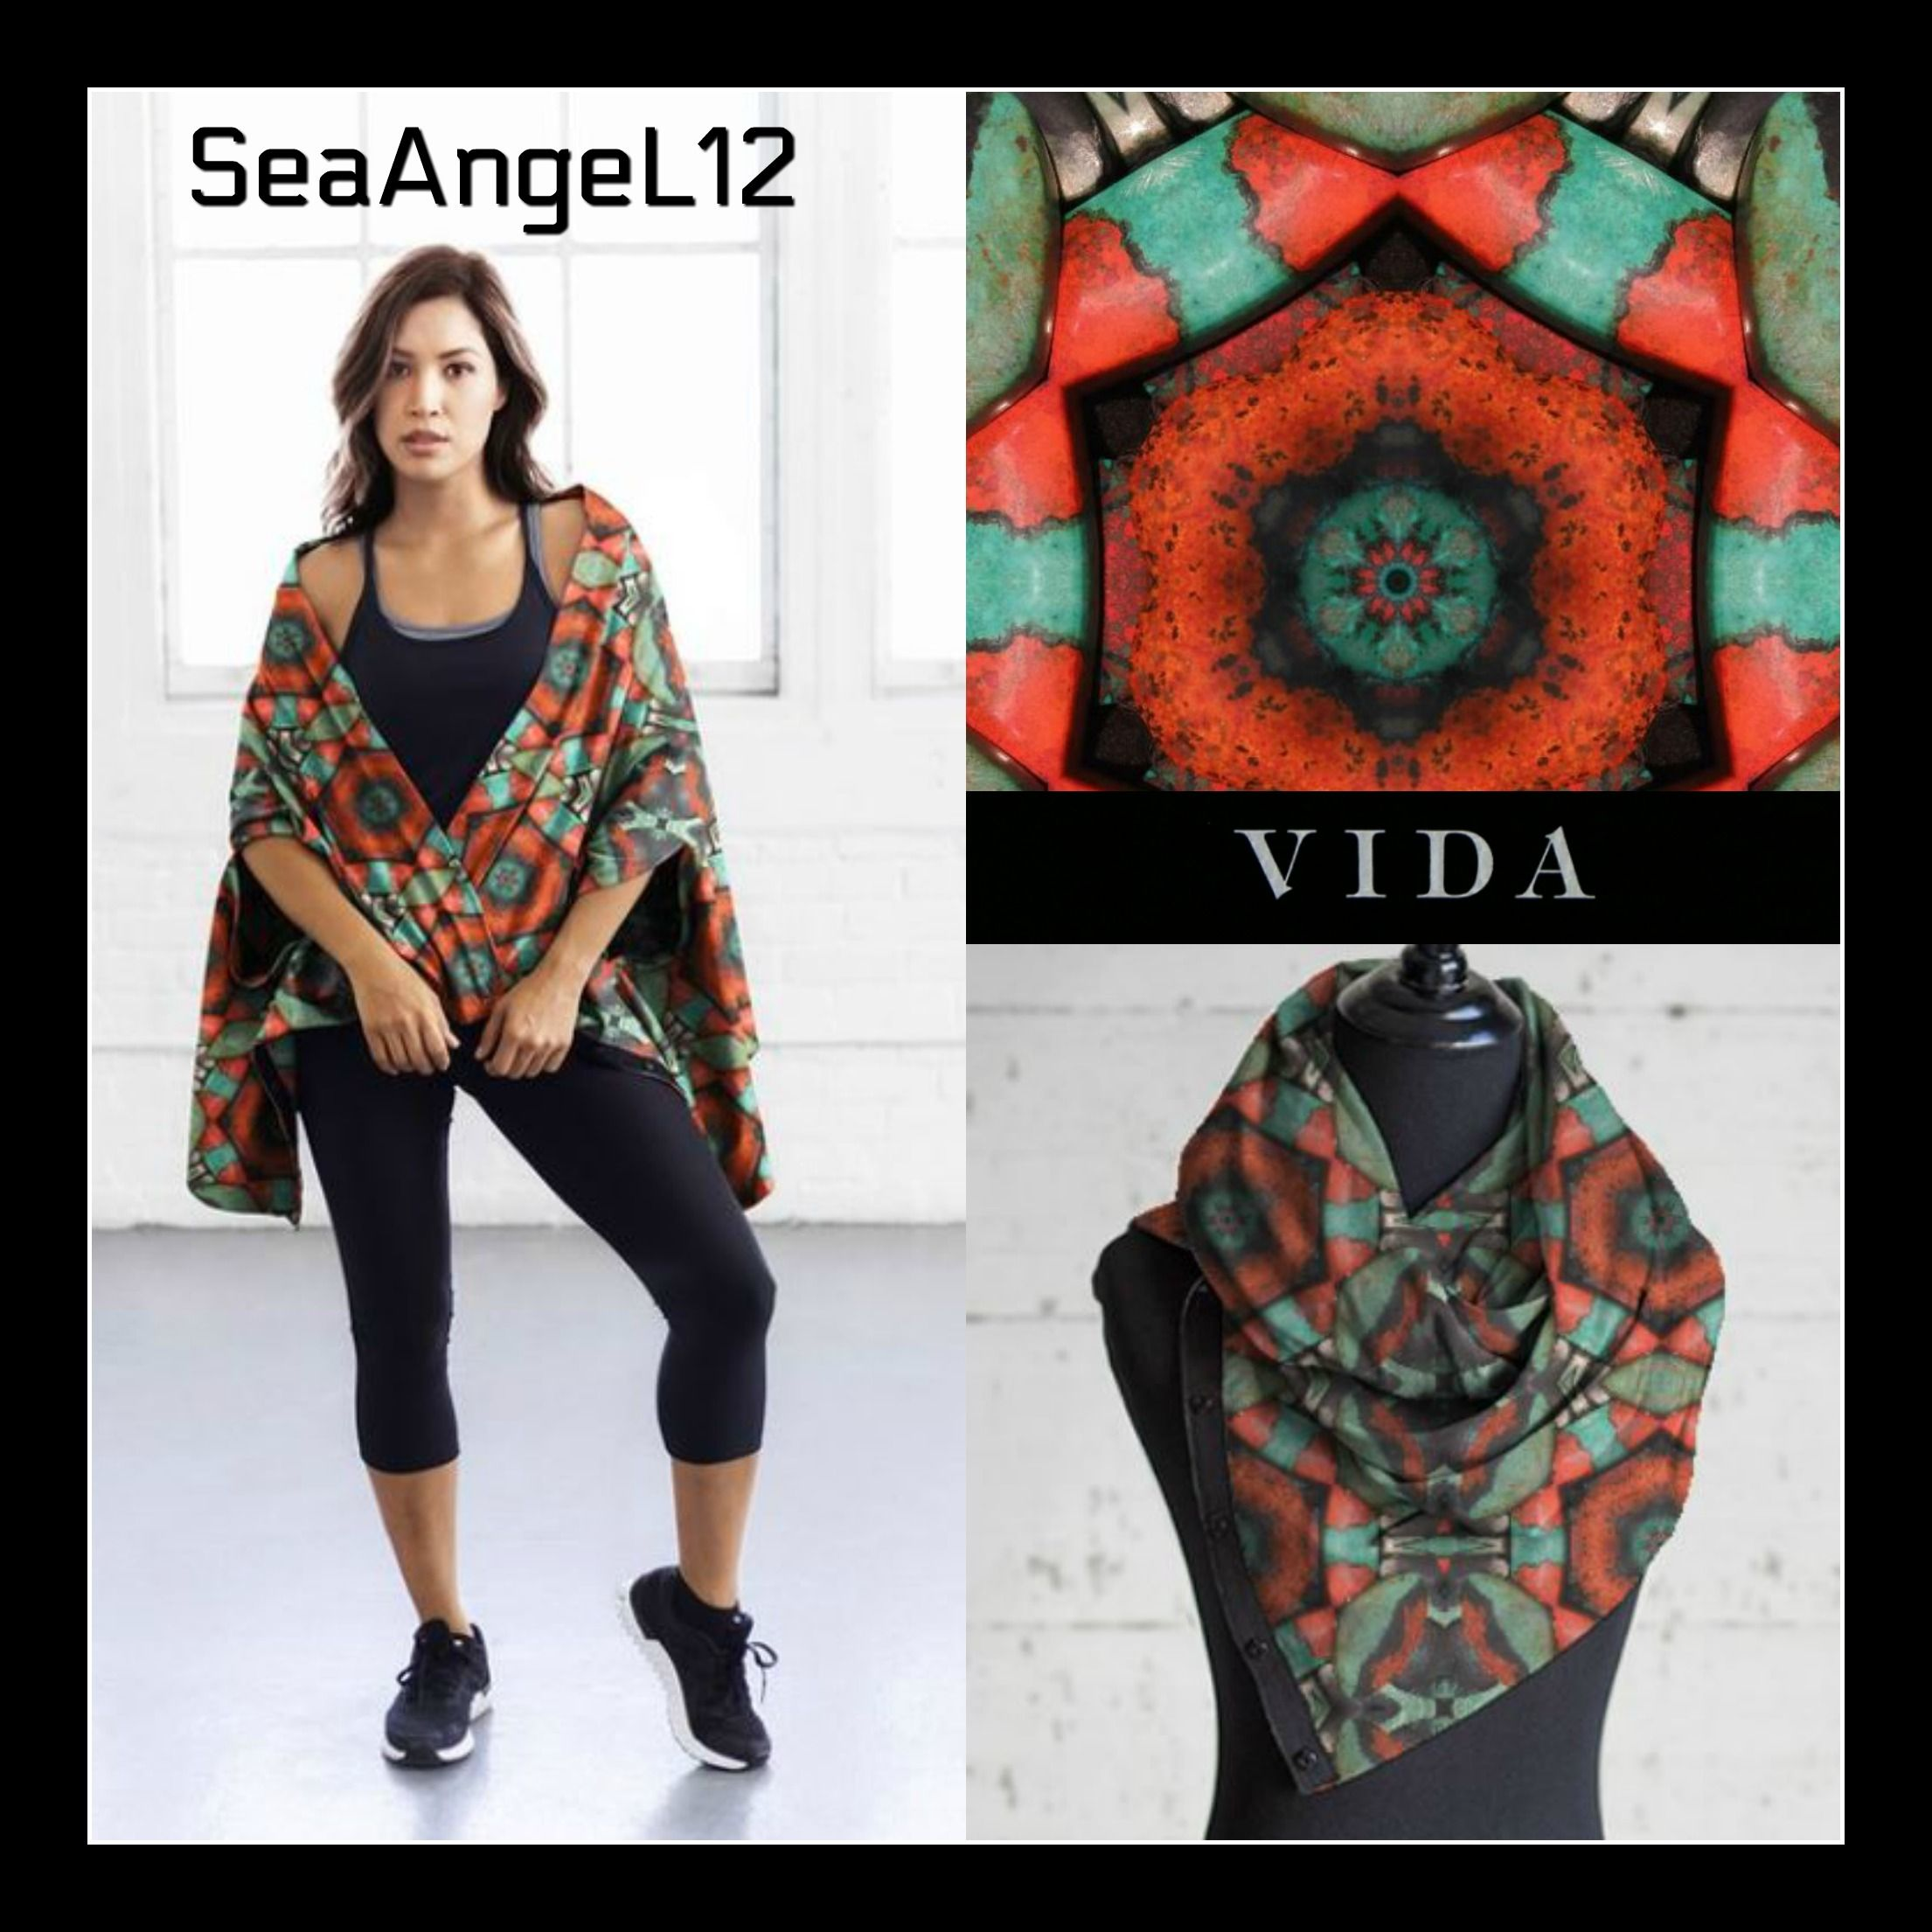 Modal Scarf - Bless the sailor M by VIDA VIDA 0pd5w1